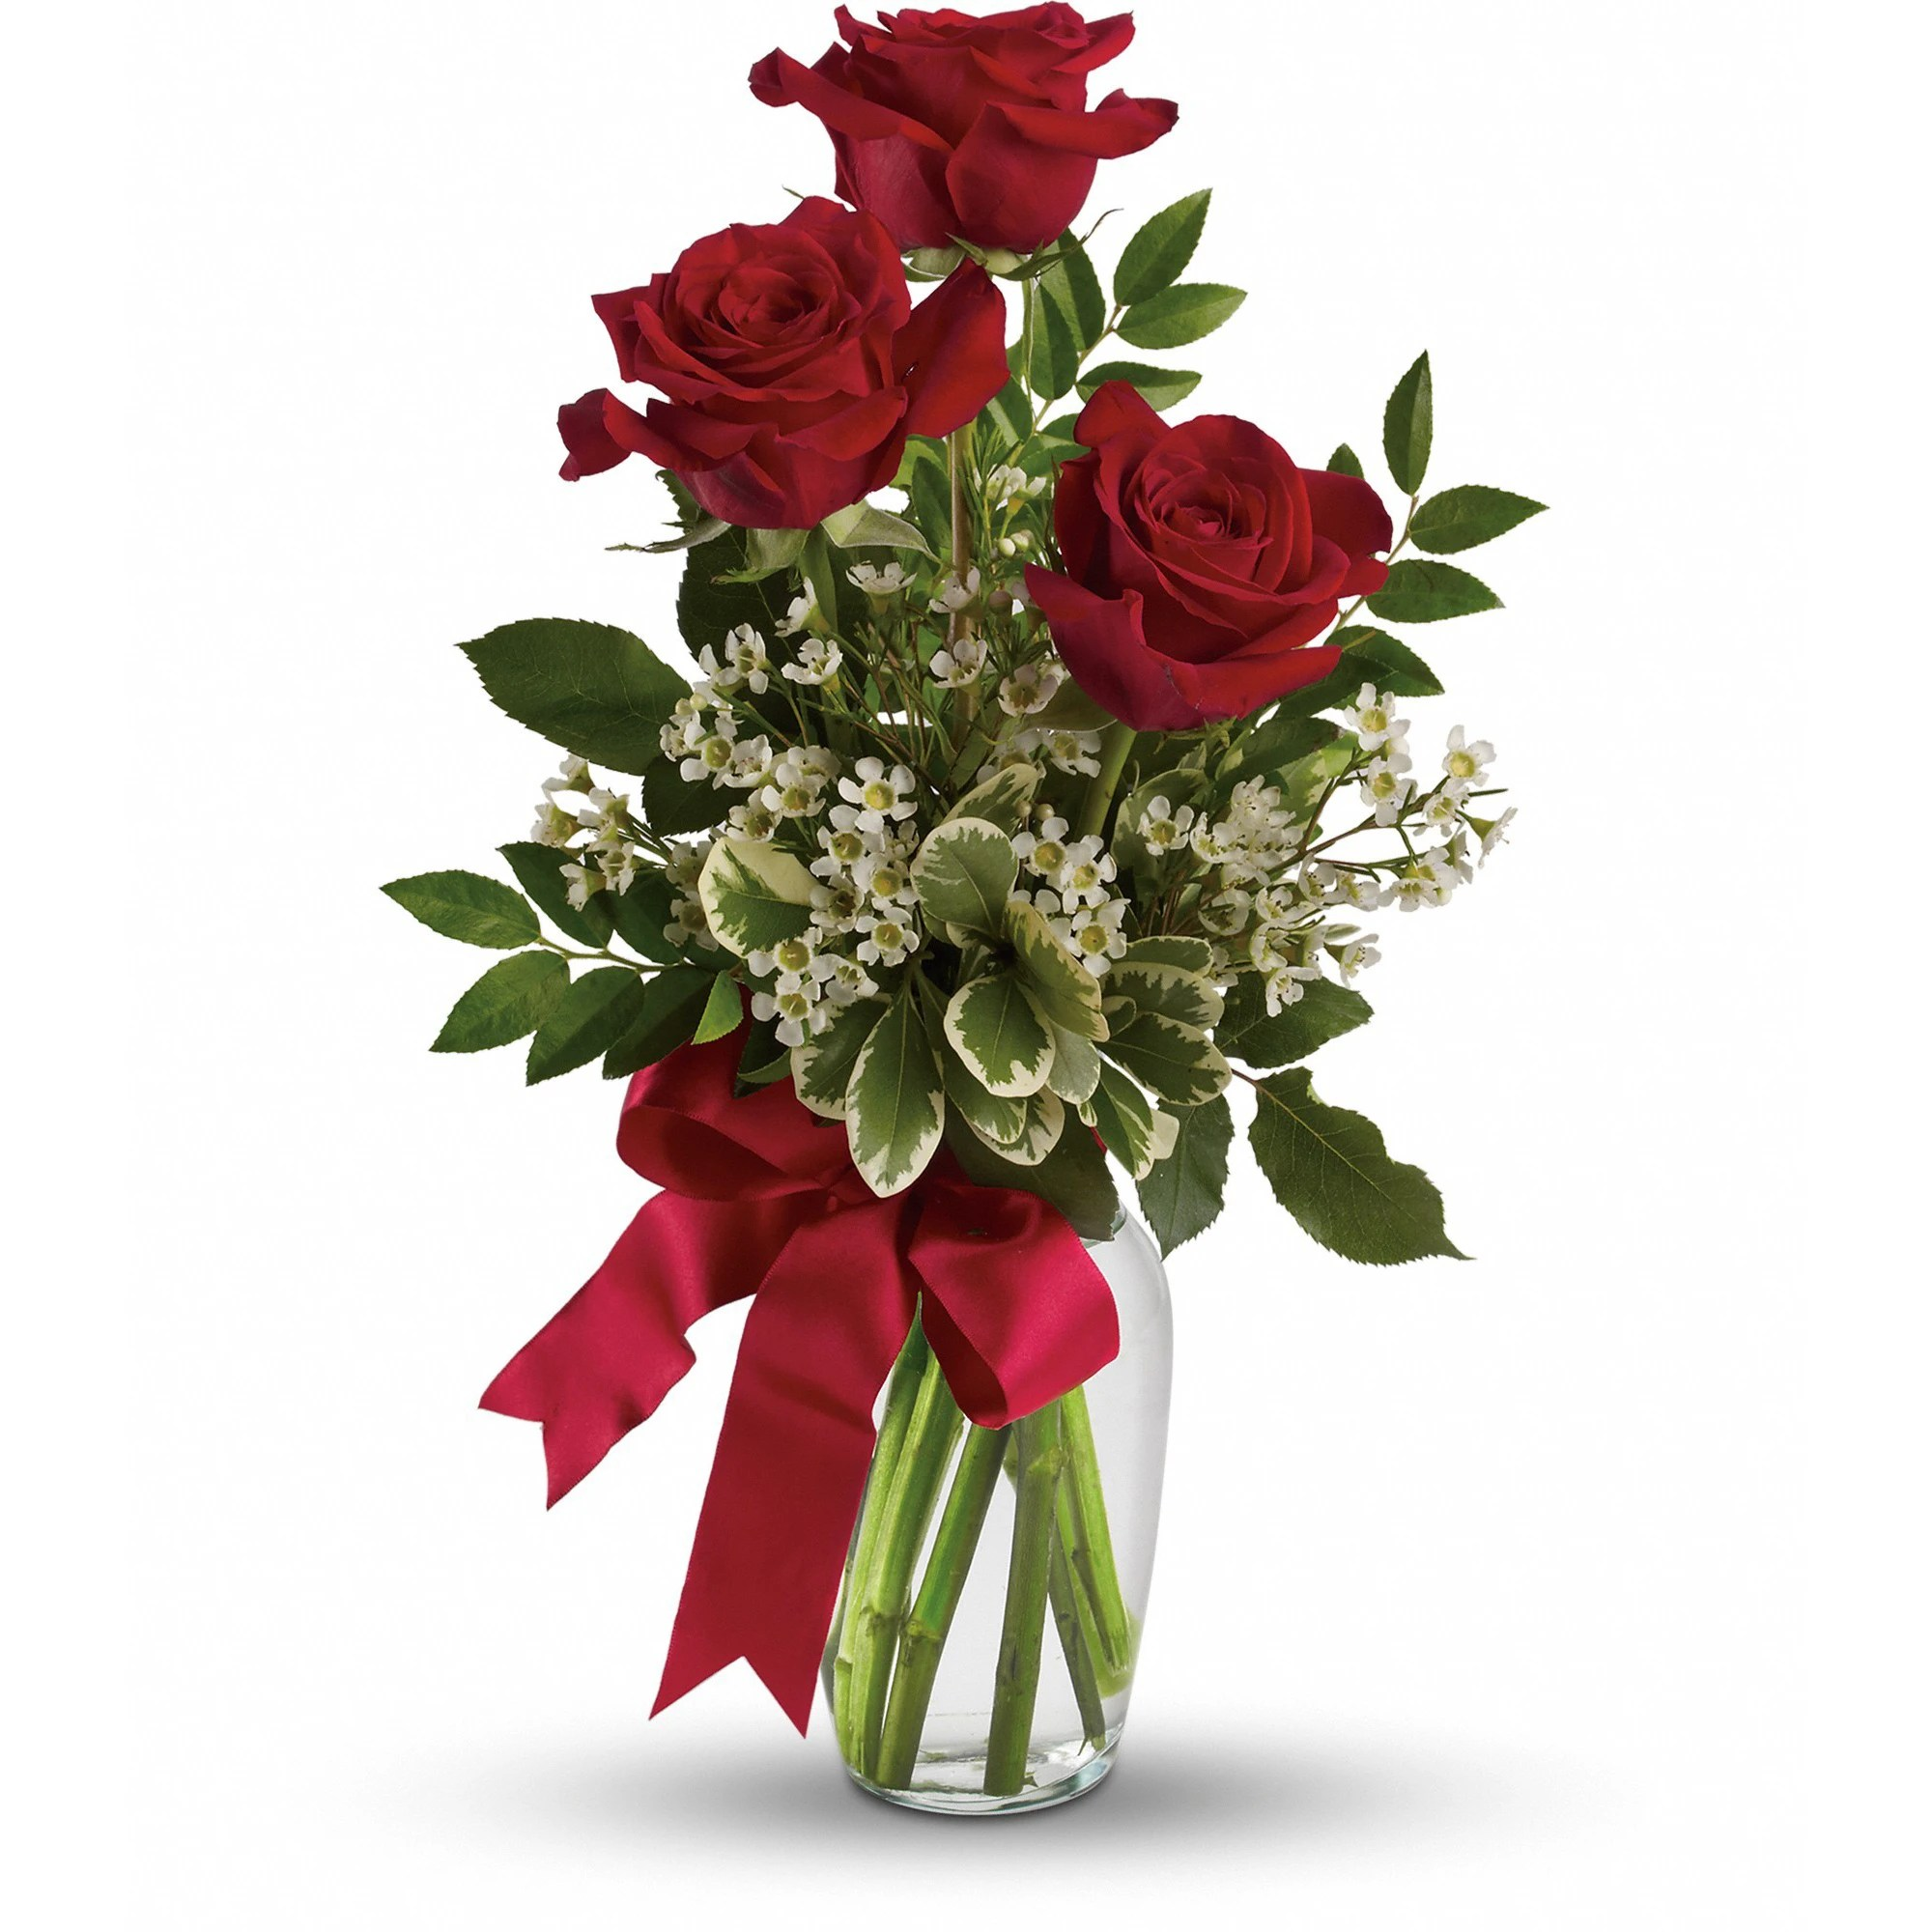 Rose Thoughts Of You Bouquet With Red Roses Tev12 6a In Bensalem Pa Flower Girl Florist